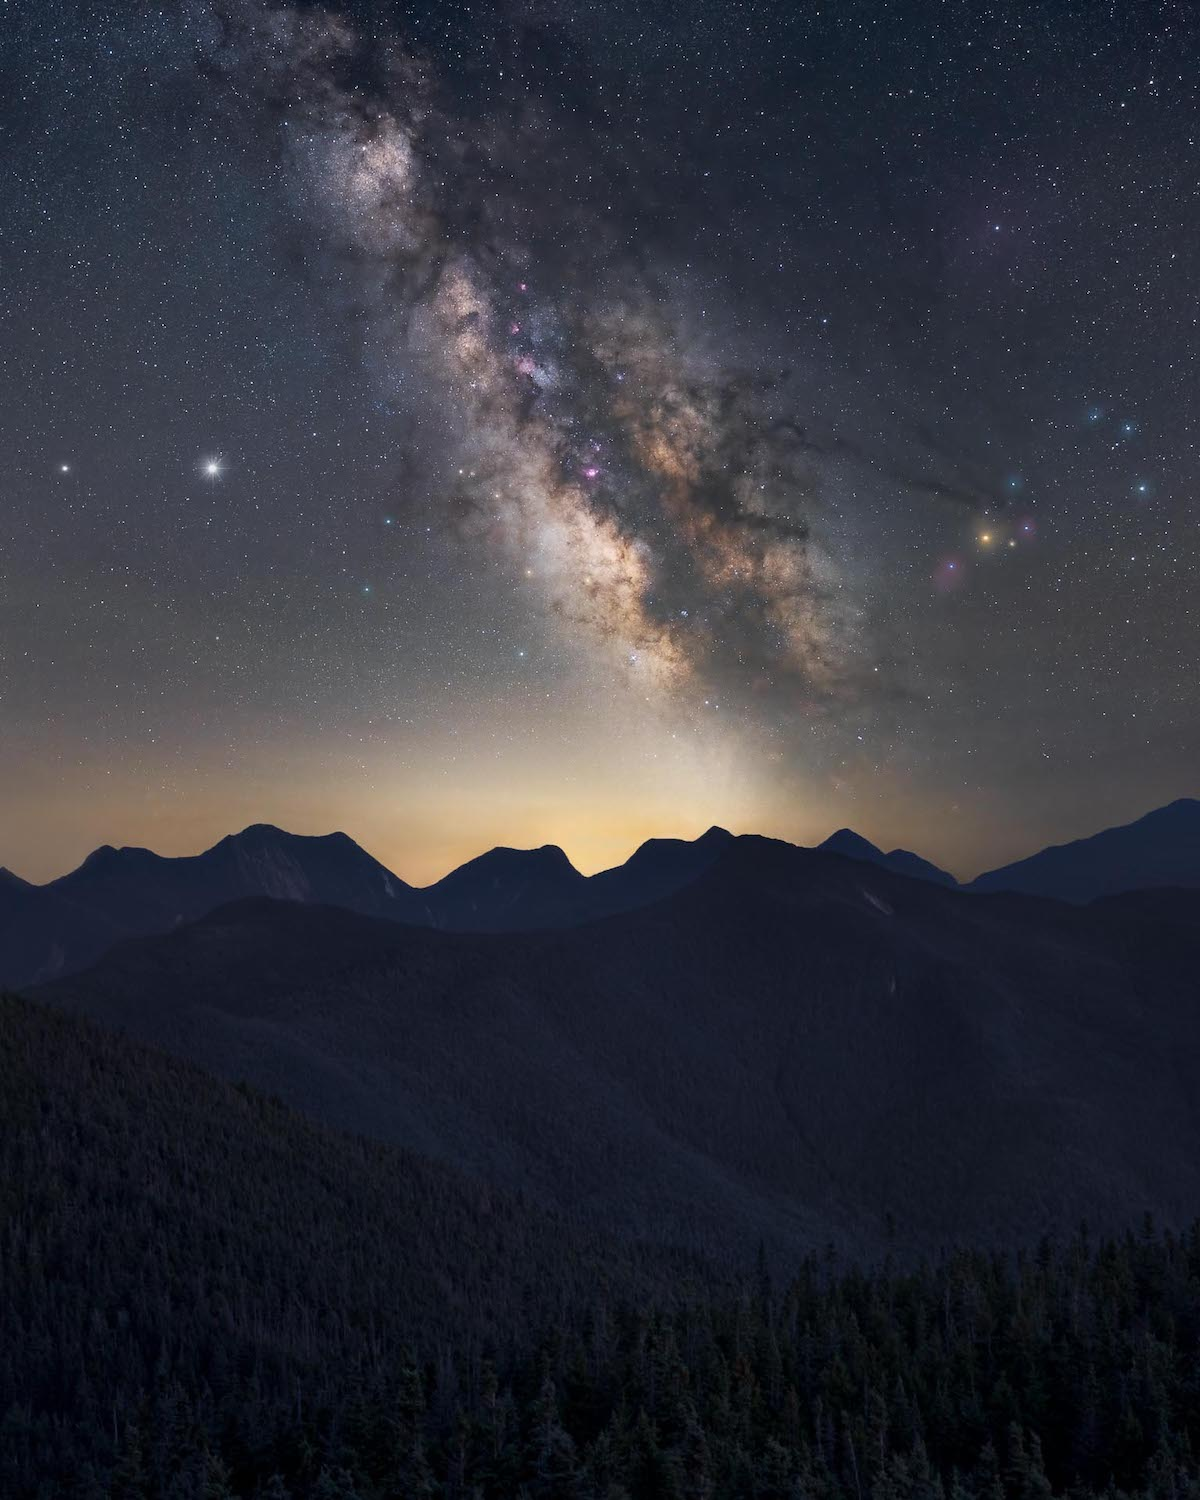 Milky Way Over the Adirondack Mountains